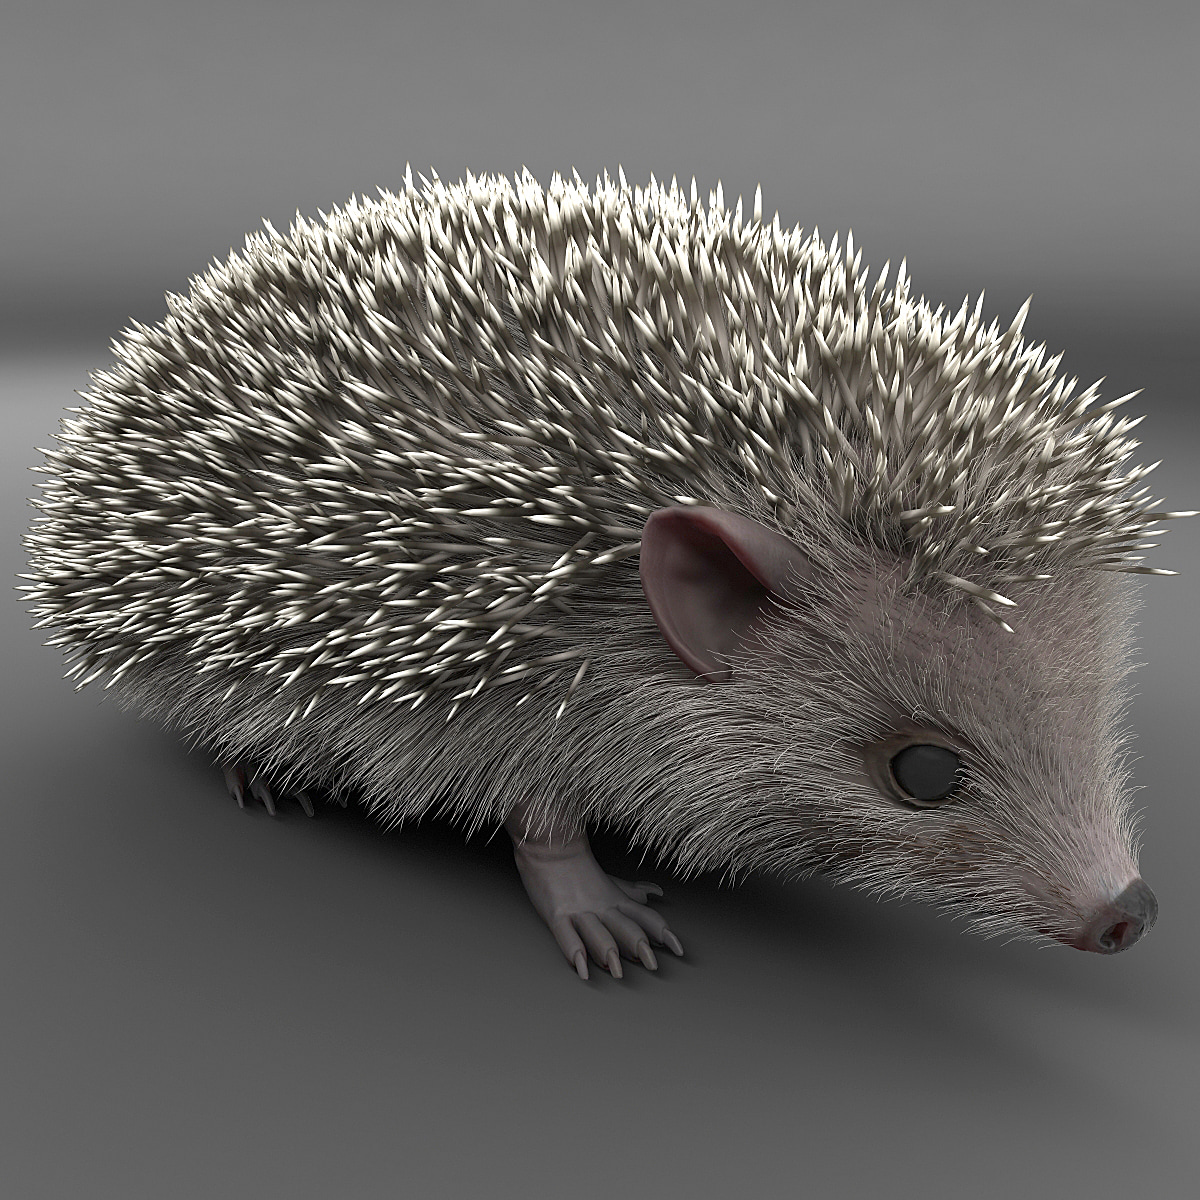 Hedgehog_001.jpg